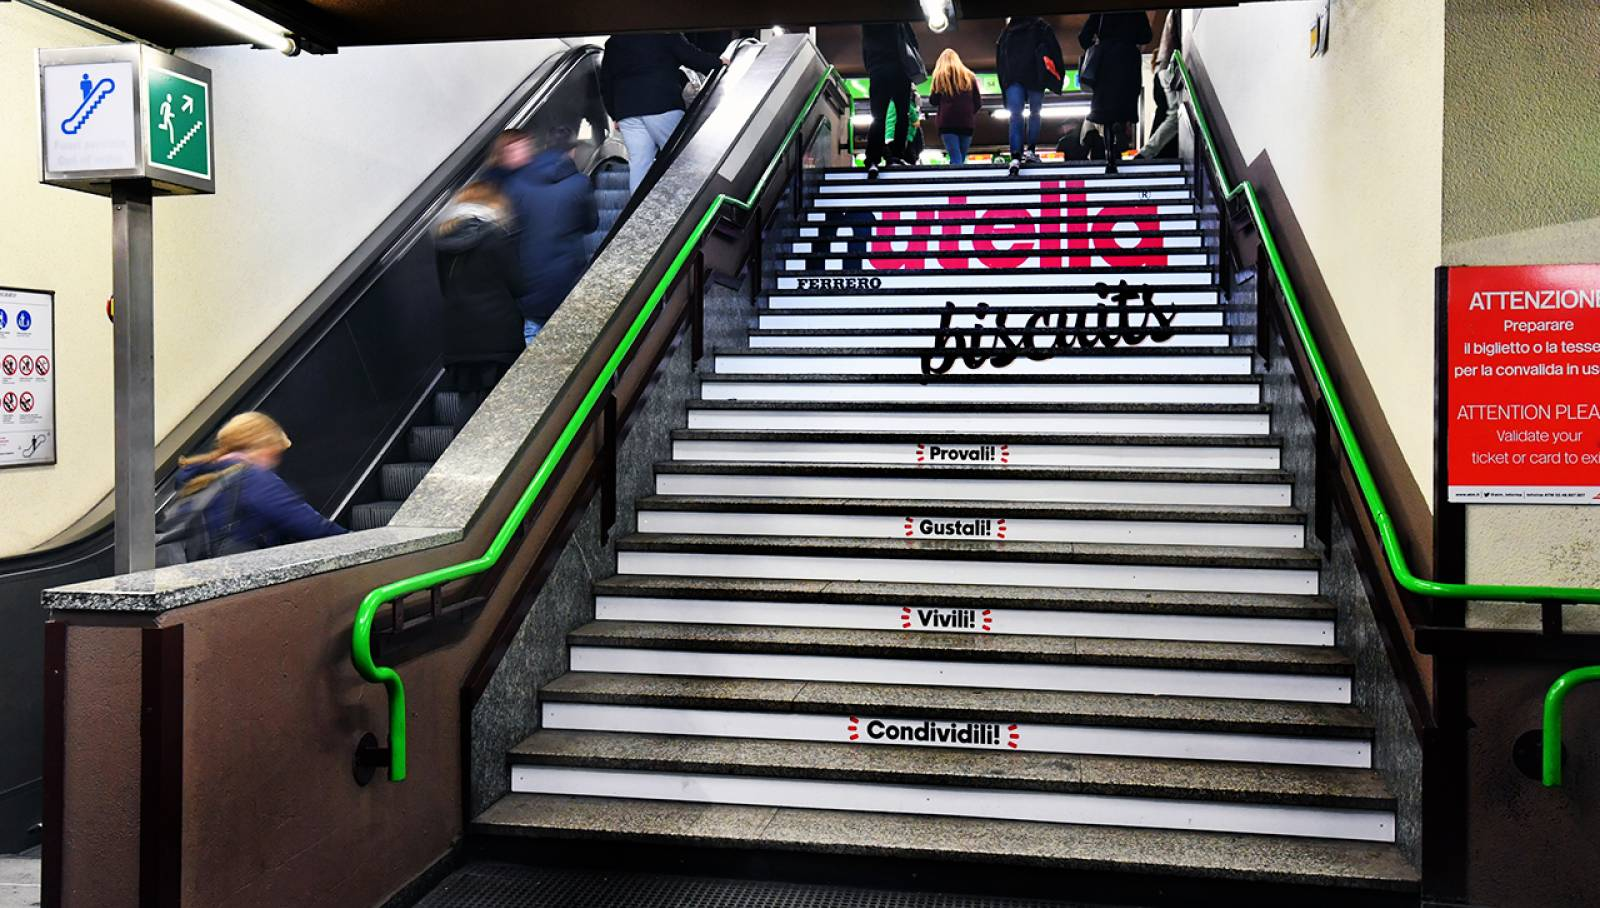 Underground OOH advertising IGPDecaux Station Domination for Ferrero Nutella Biscuits in Milan